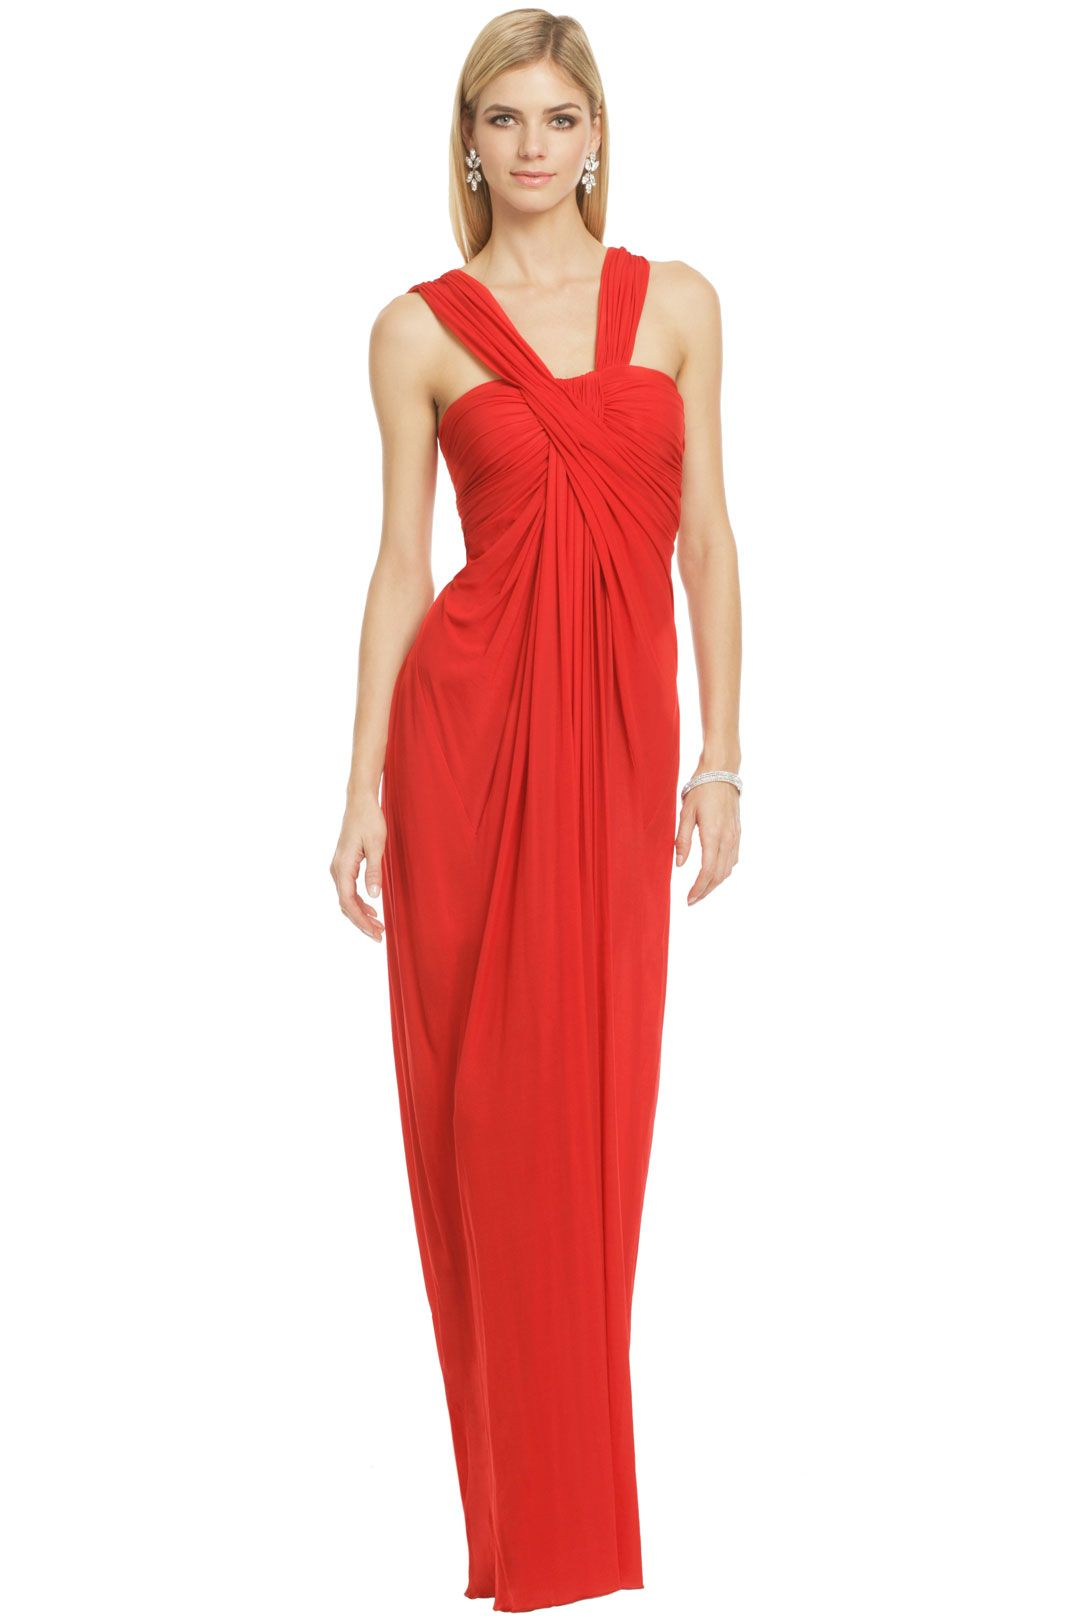 Lovers Lane Gown | Lovers lane, Donna karan and Lovers